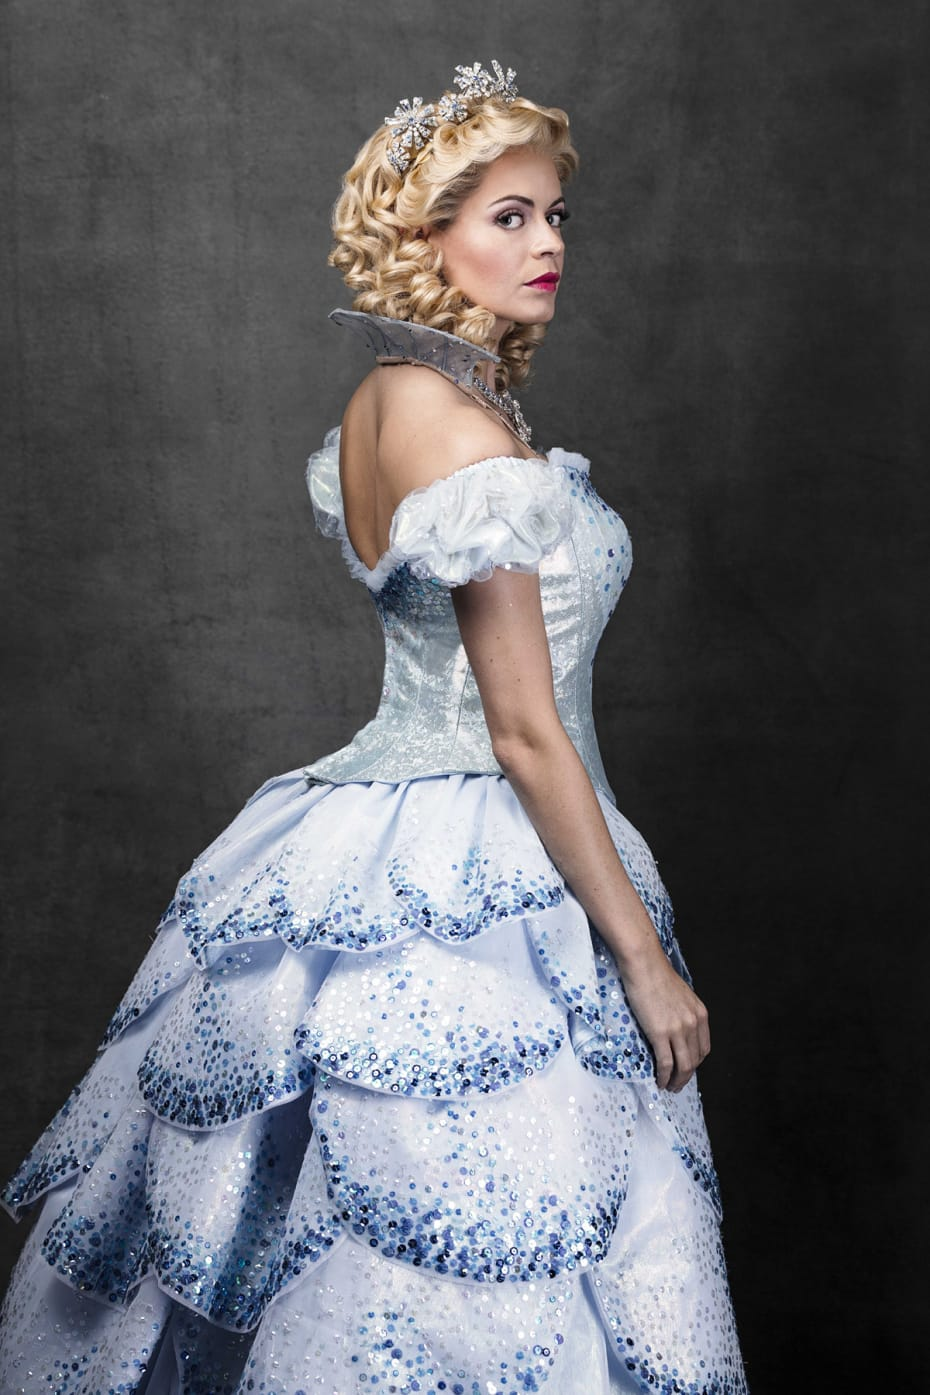 Sophie Evans (Glinda) in Wicked (Photo: Darren Bell)